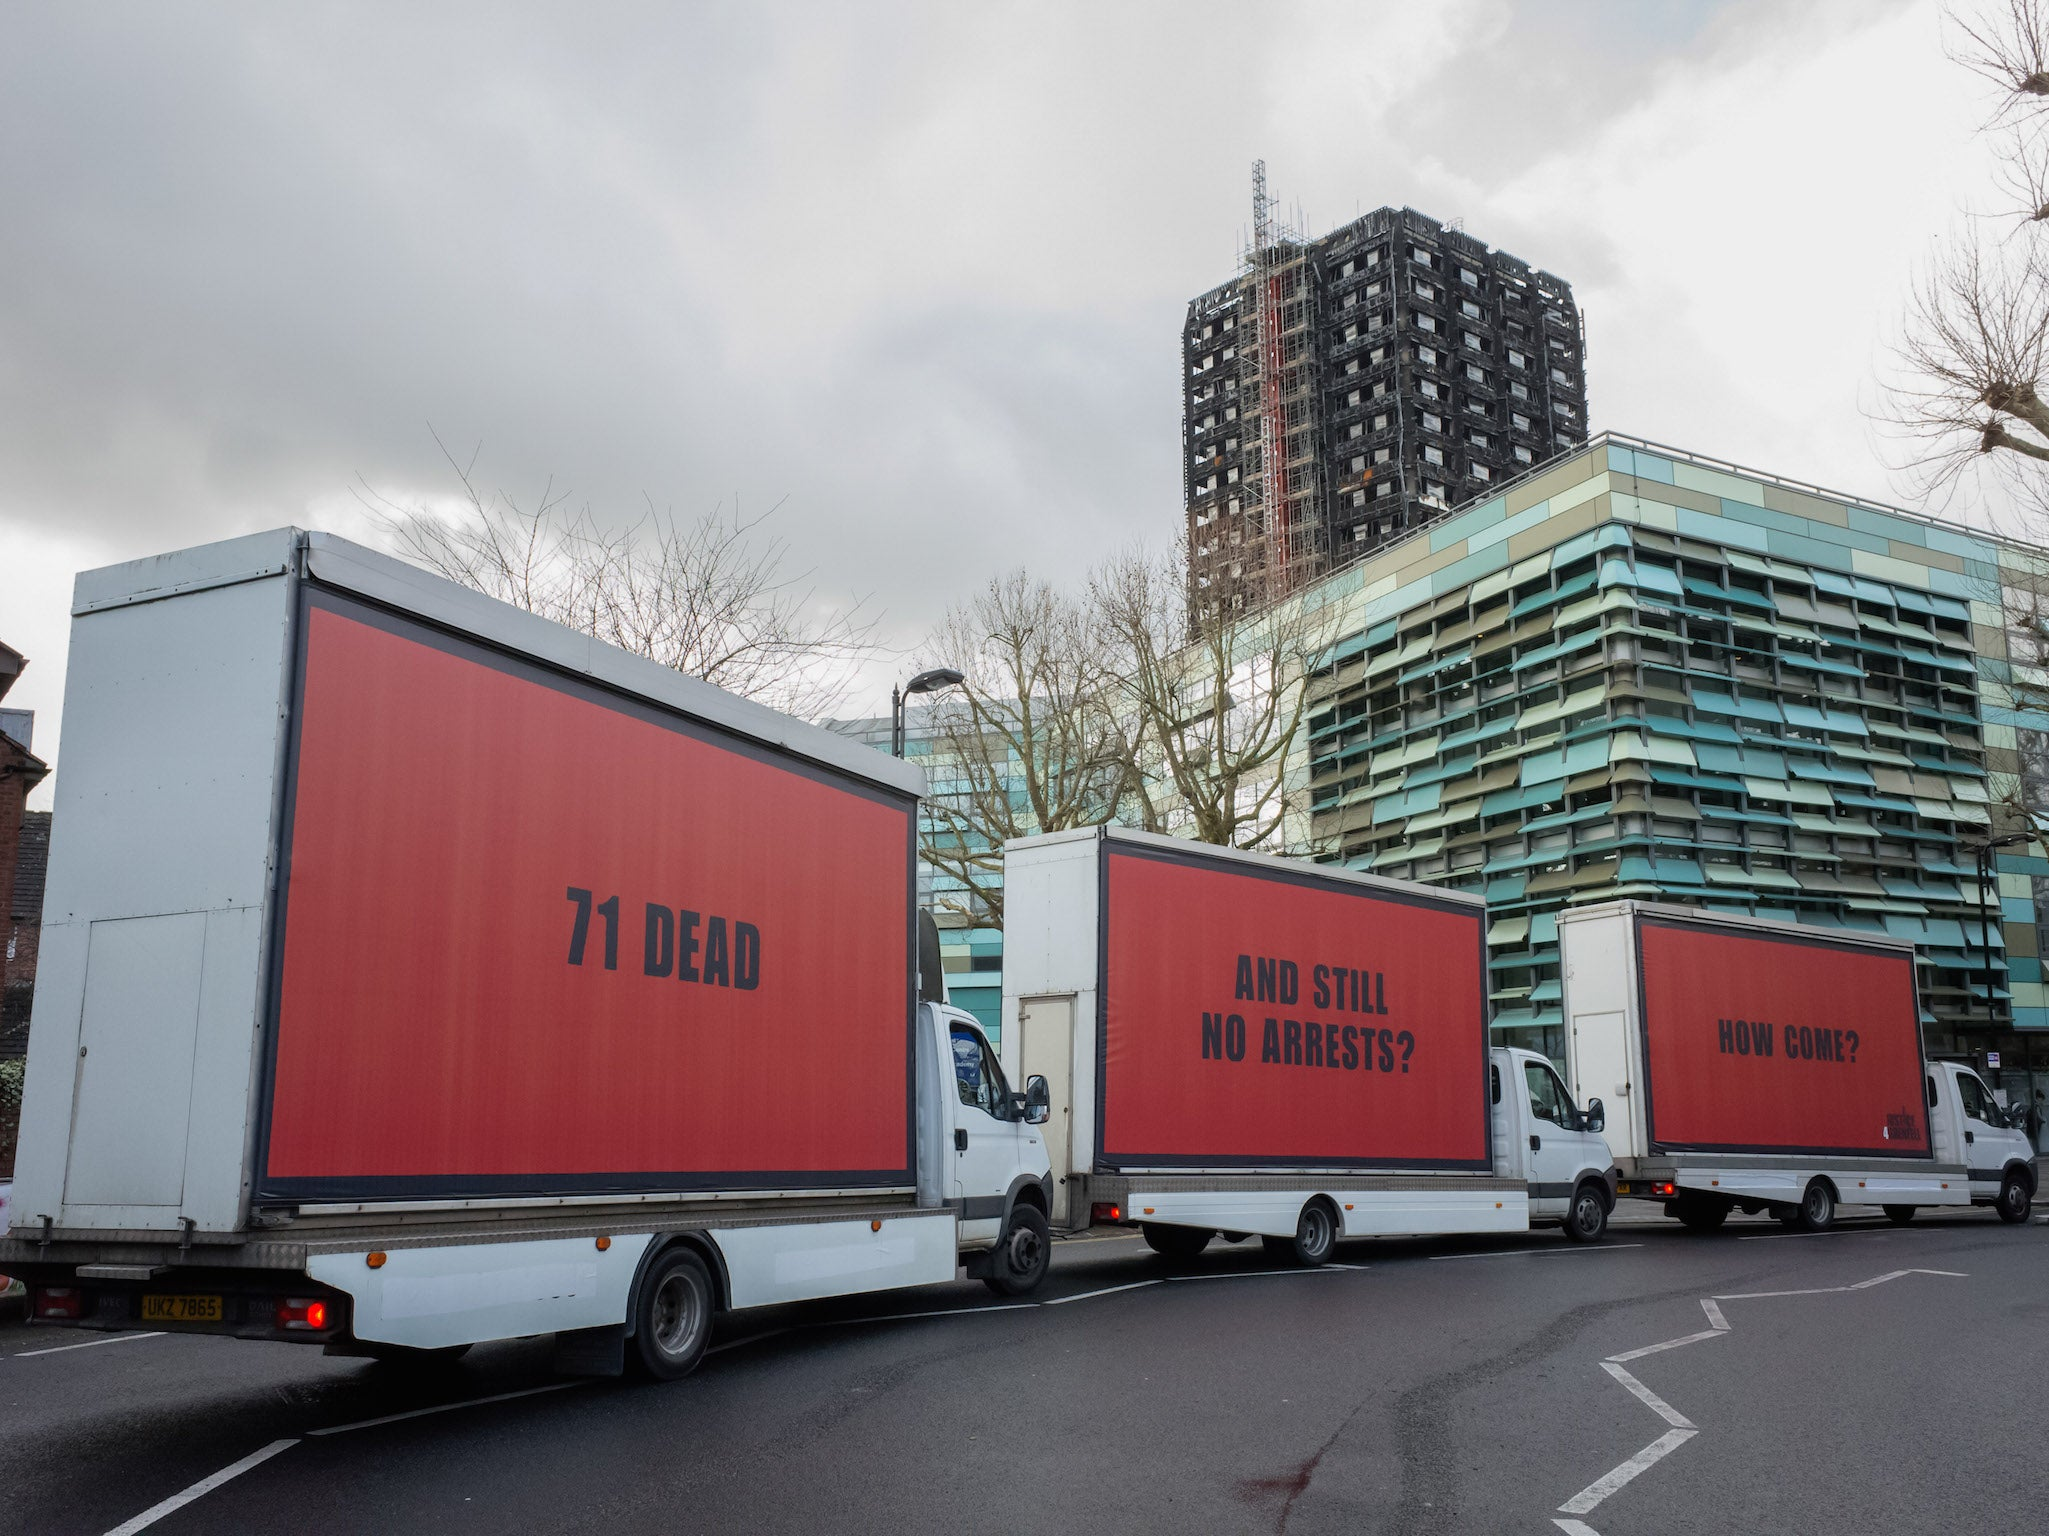 Watch Three Billboards inspired a campaign demanding justice for fire that killed 71 people in London video